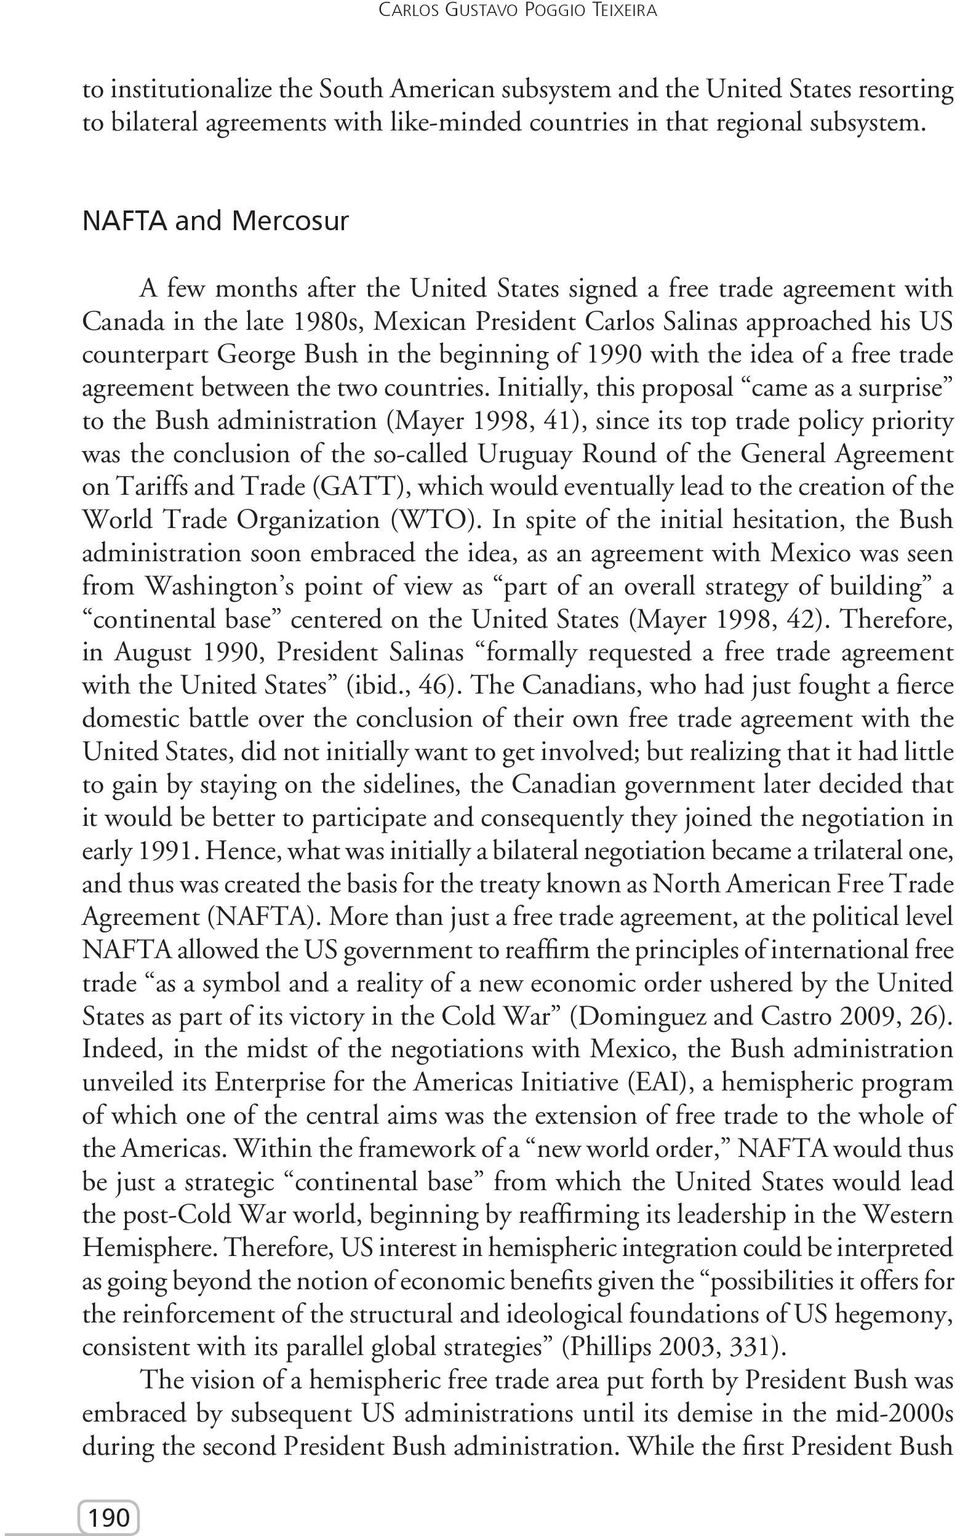 beginning of 1990 with the idea of a free trade agreement between the two countries.